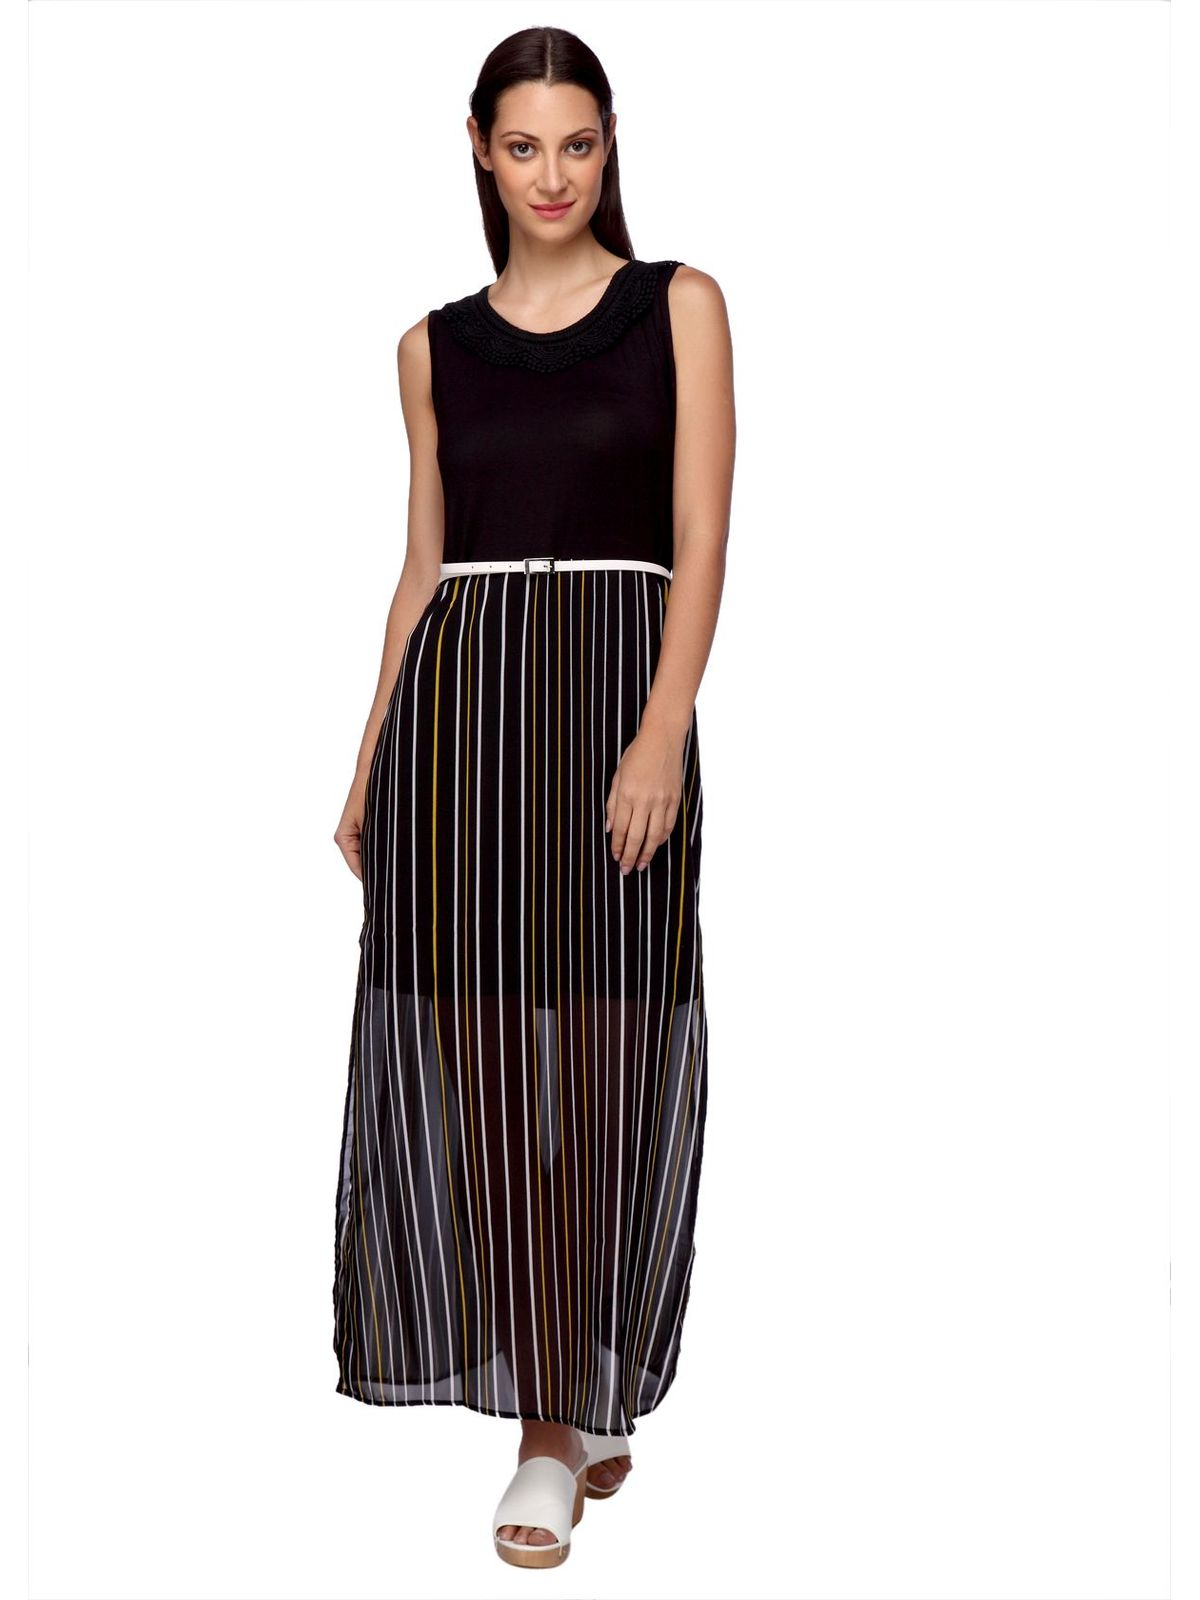 LUCY STRIPES MAXI